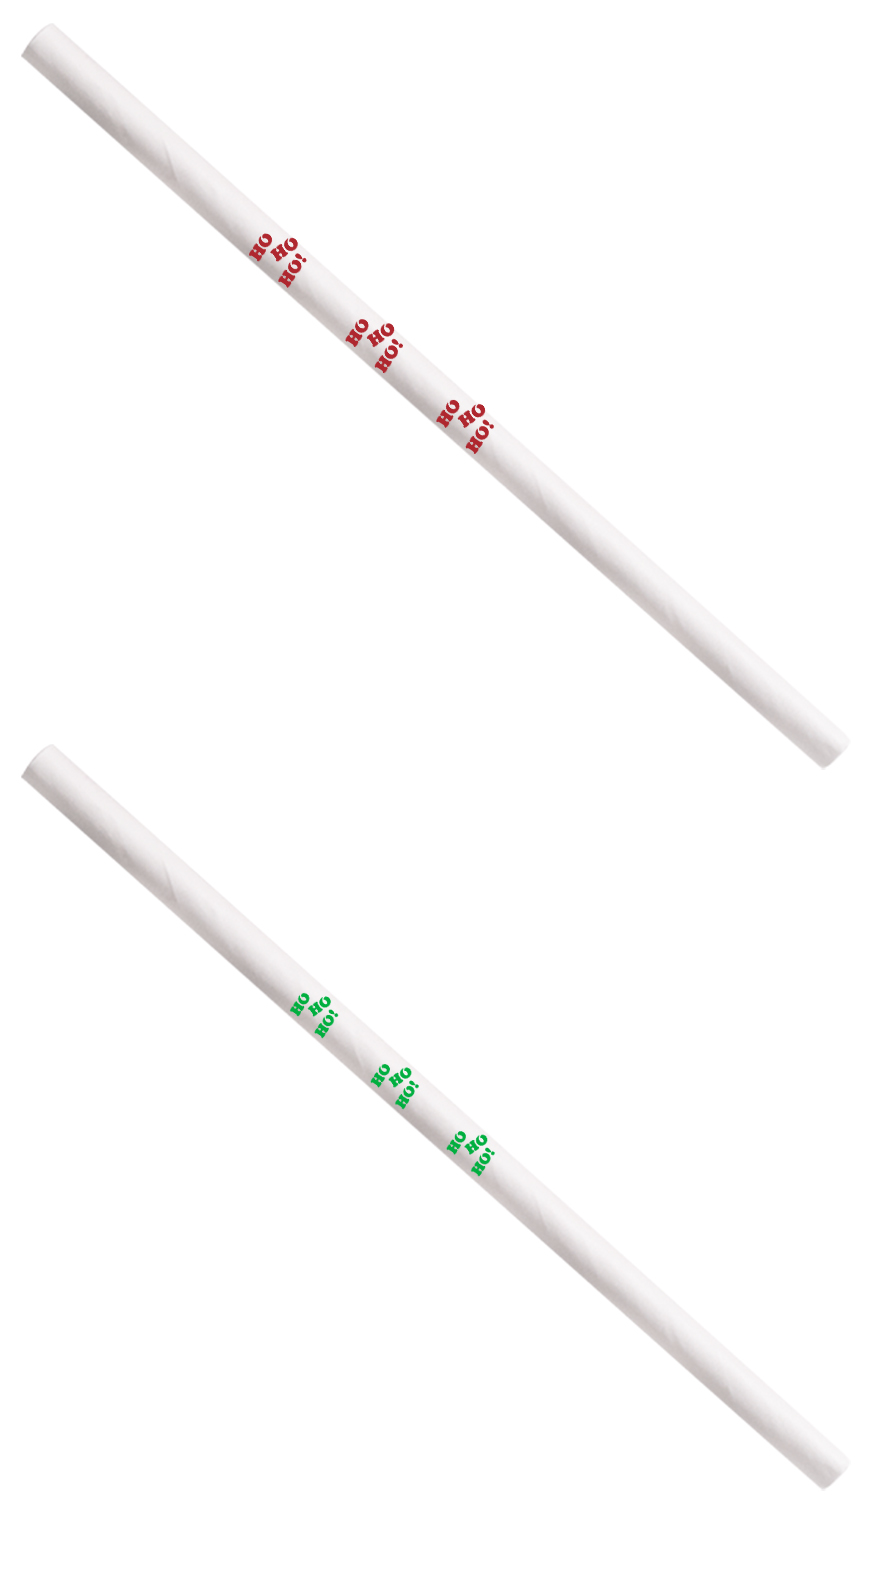 White Cocktail 5.75 with HO HO HO Print in Red and Green- Unwrapped